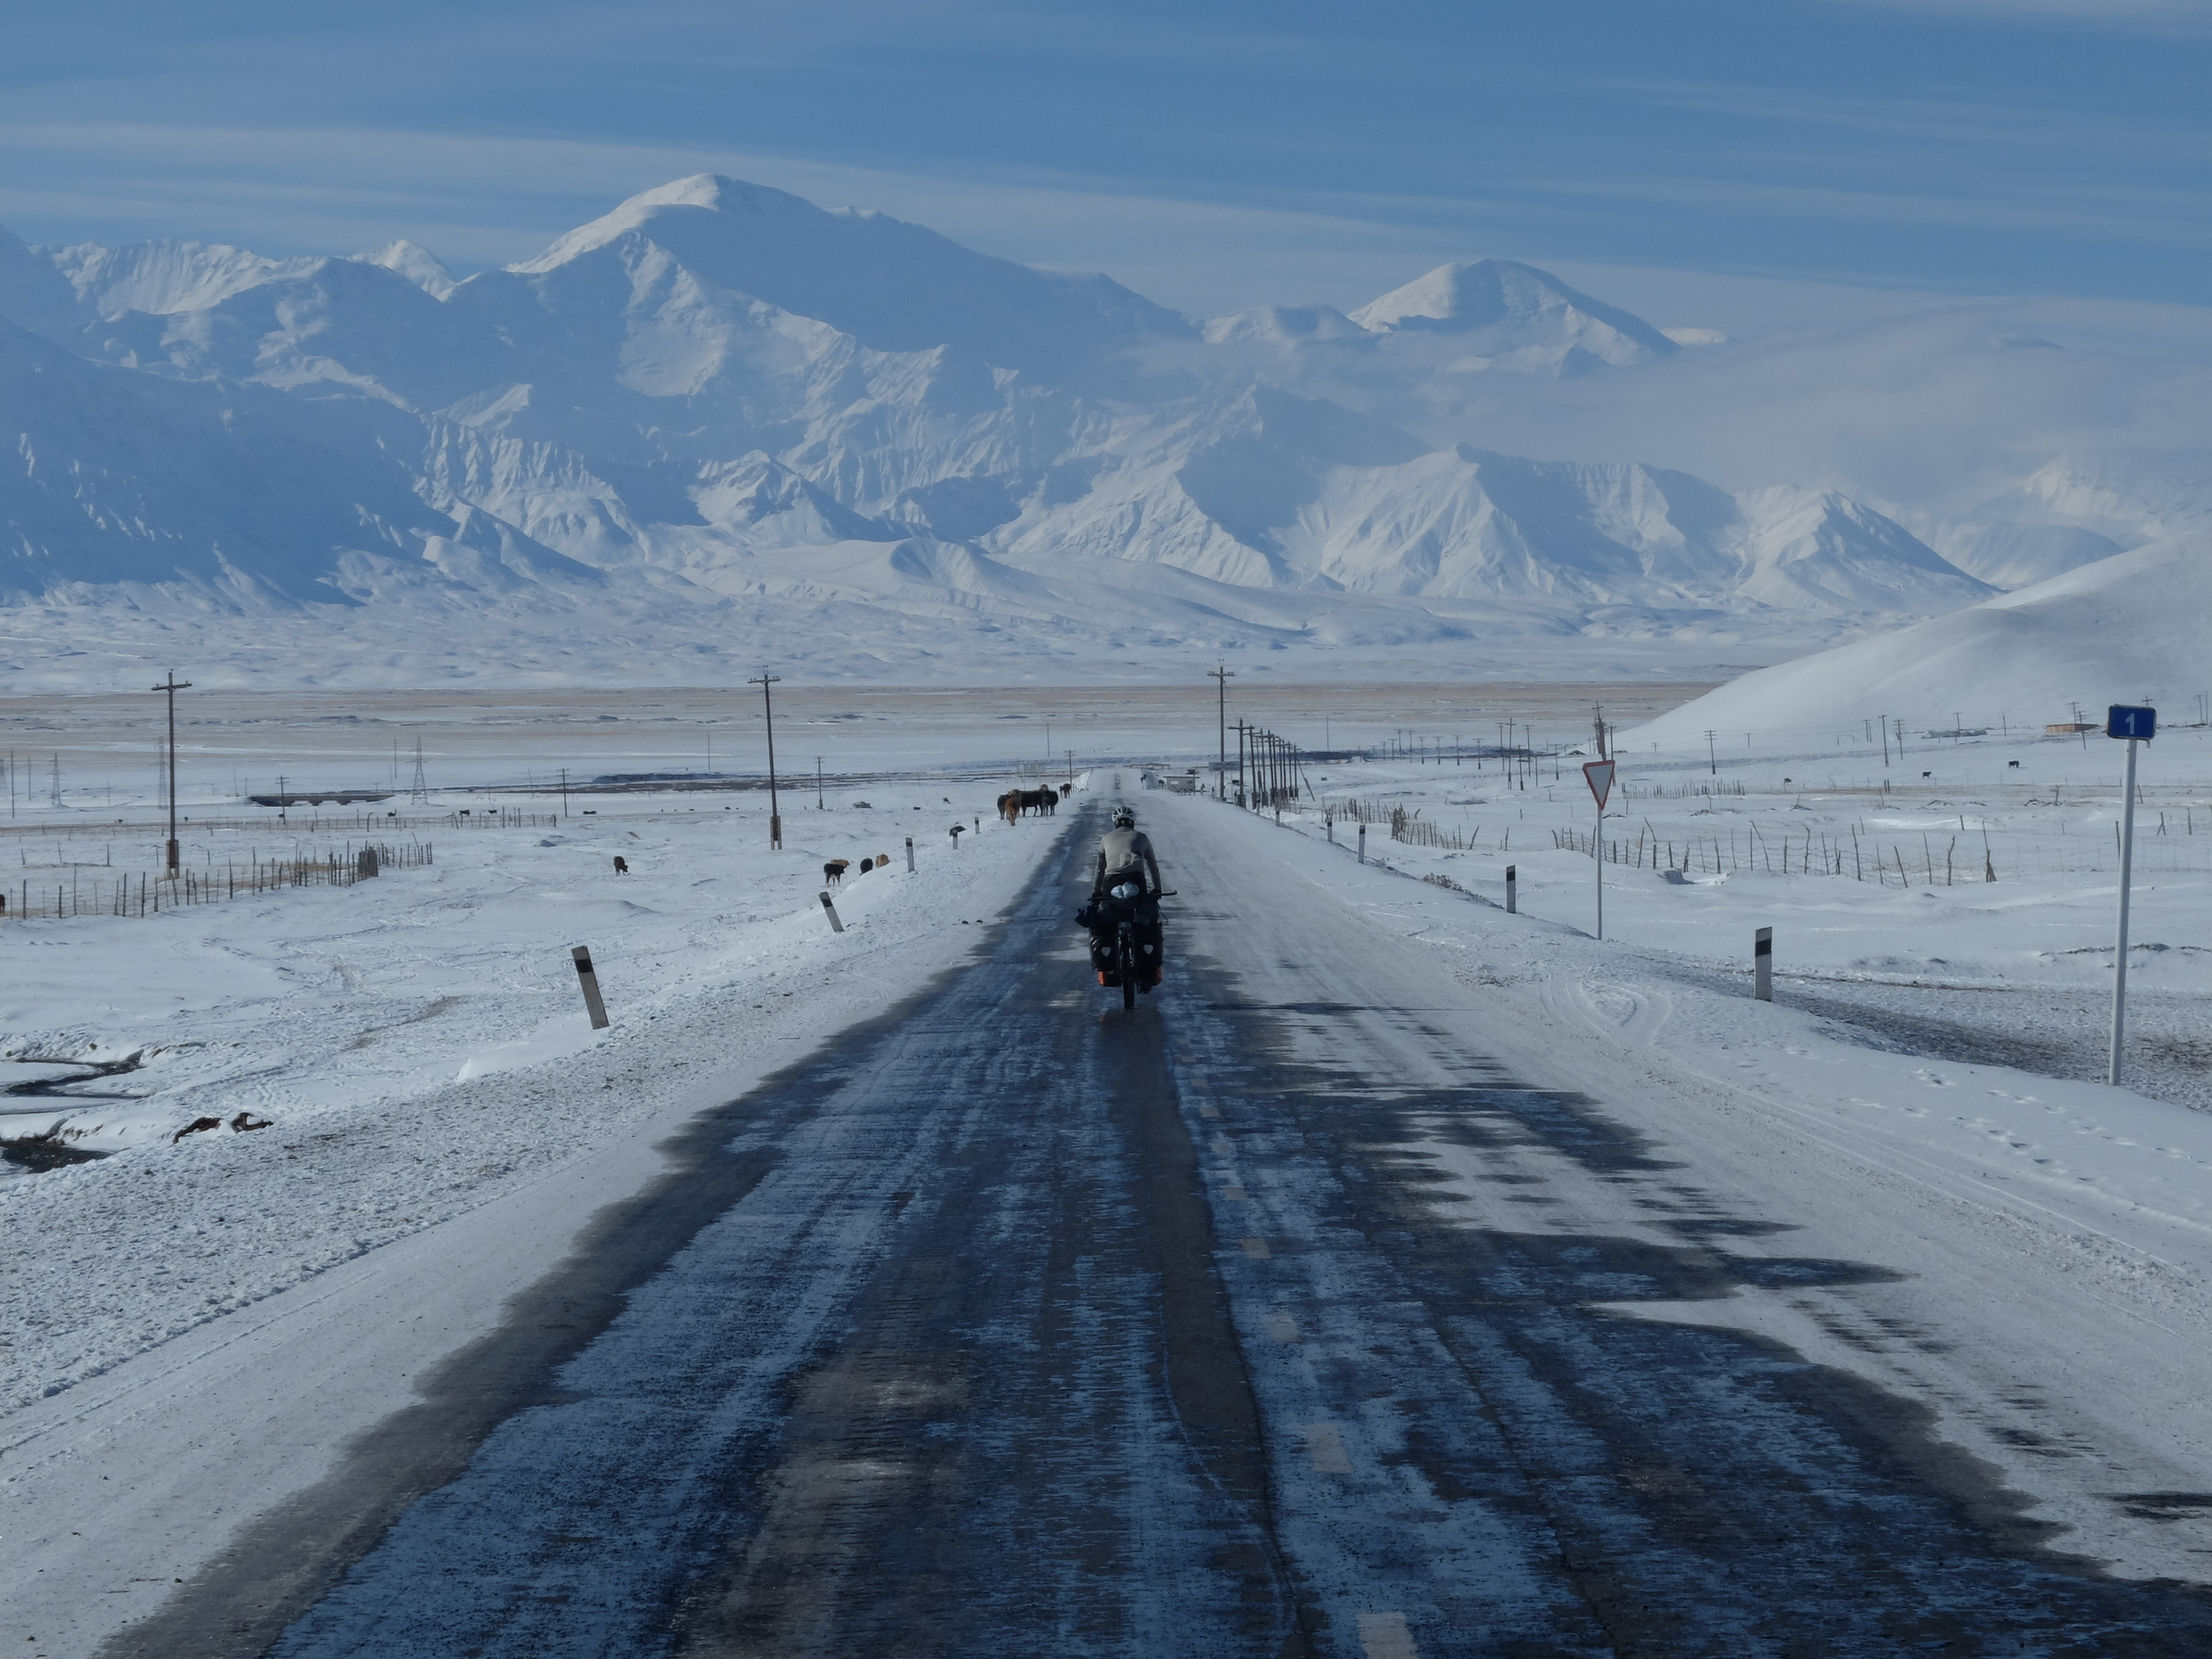 Leaving Sary Tash into the Pamir proper